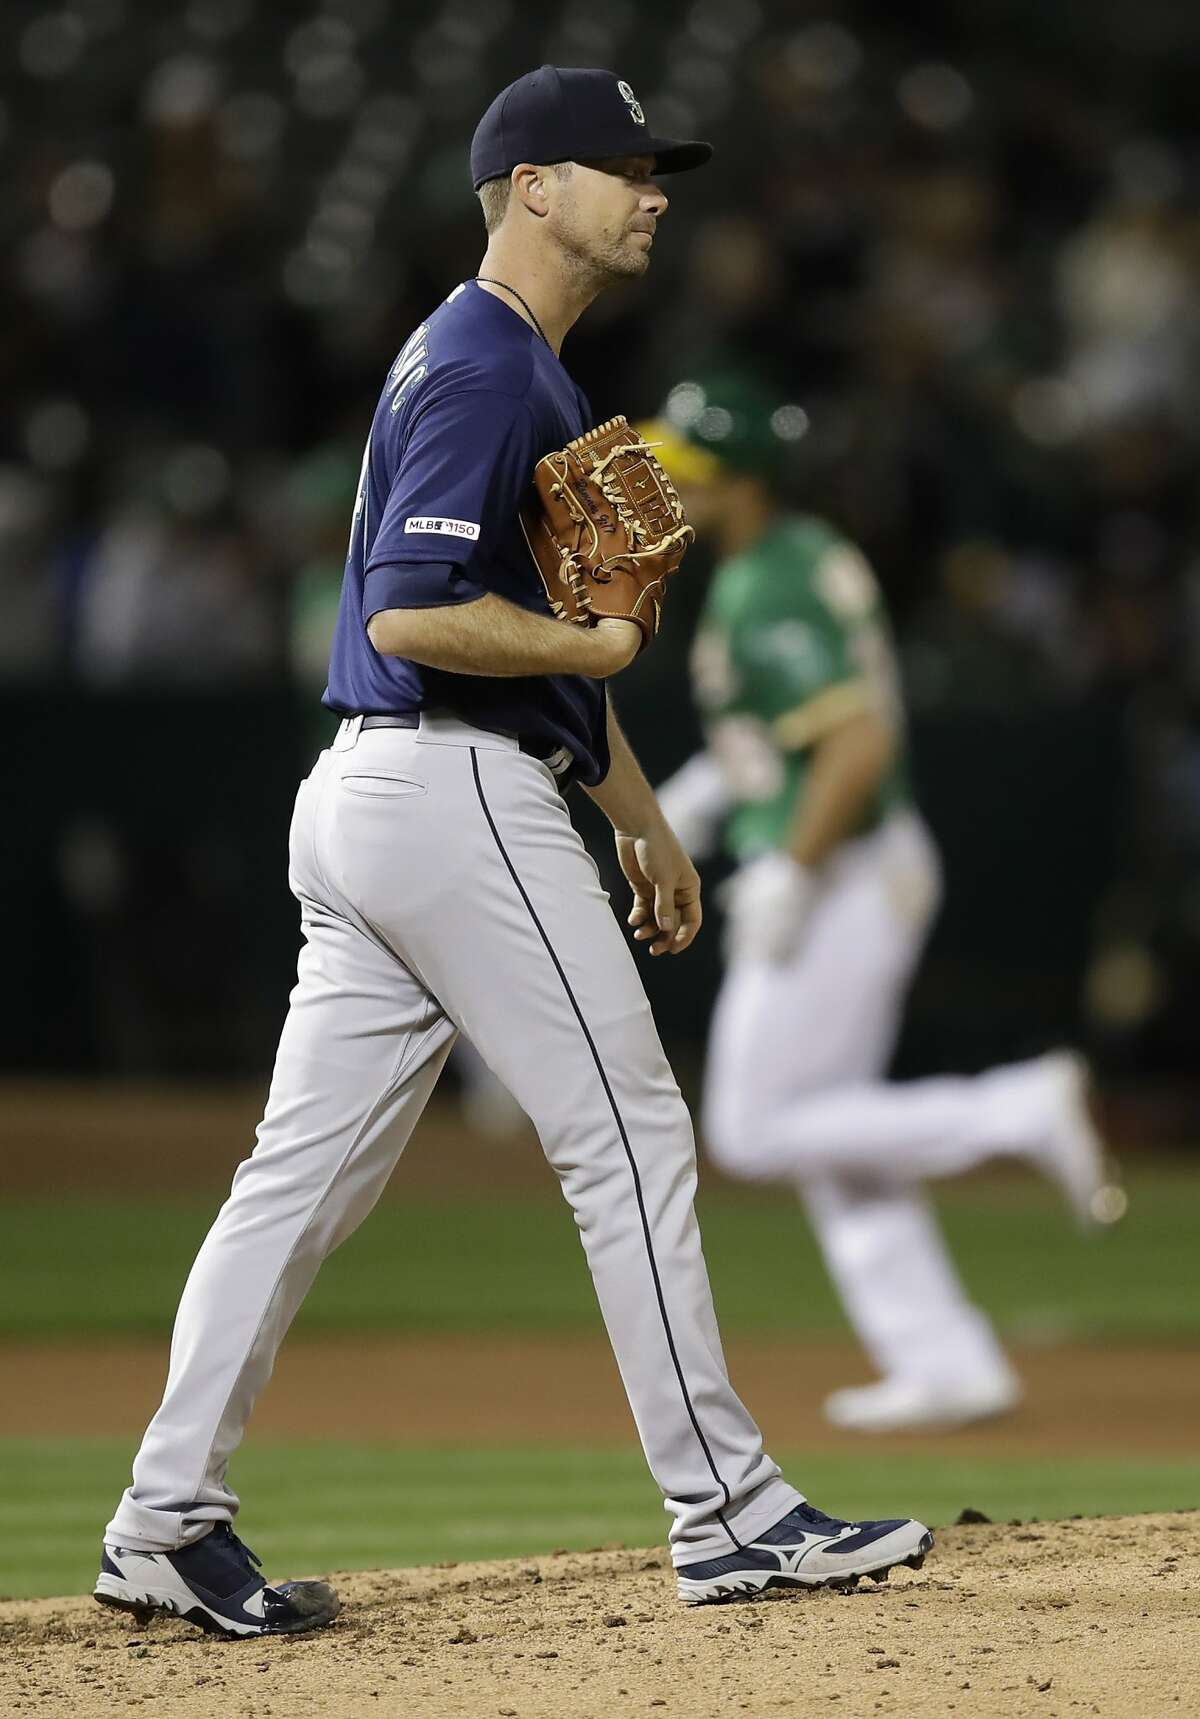 Seattle Mariners' Wade LeBlanc walks back on the mound after giving up a three-run home run to Oakland Athletics' Matt Olson, rear, during the fourth inning of a baseball game Friday, May 24, 2019, in Oakland, Calif. (AP Photo/Ben Margot)